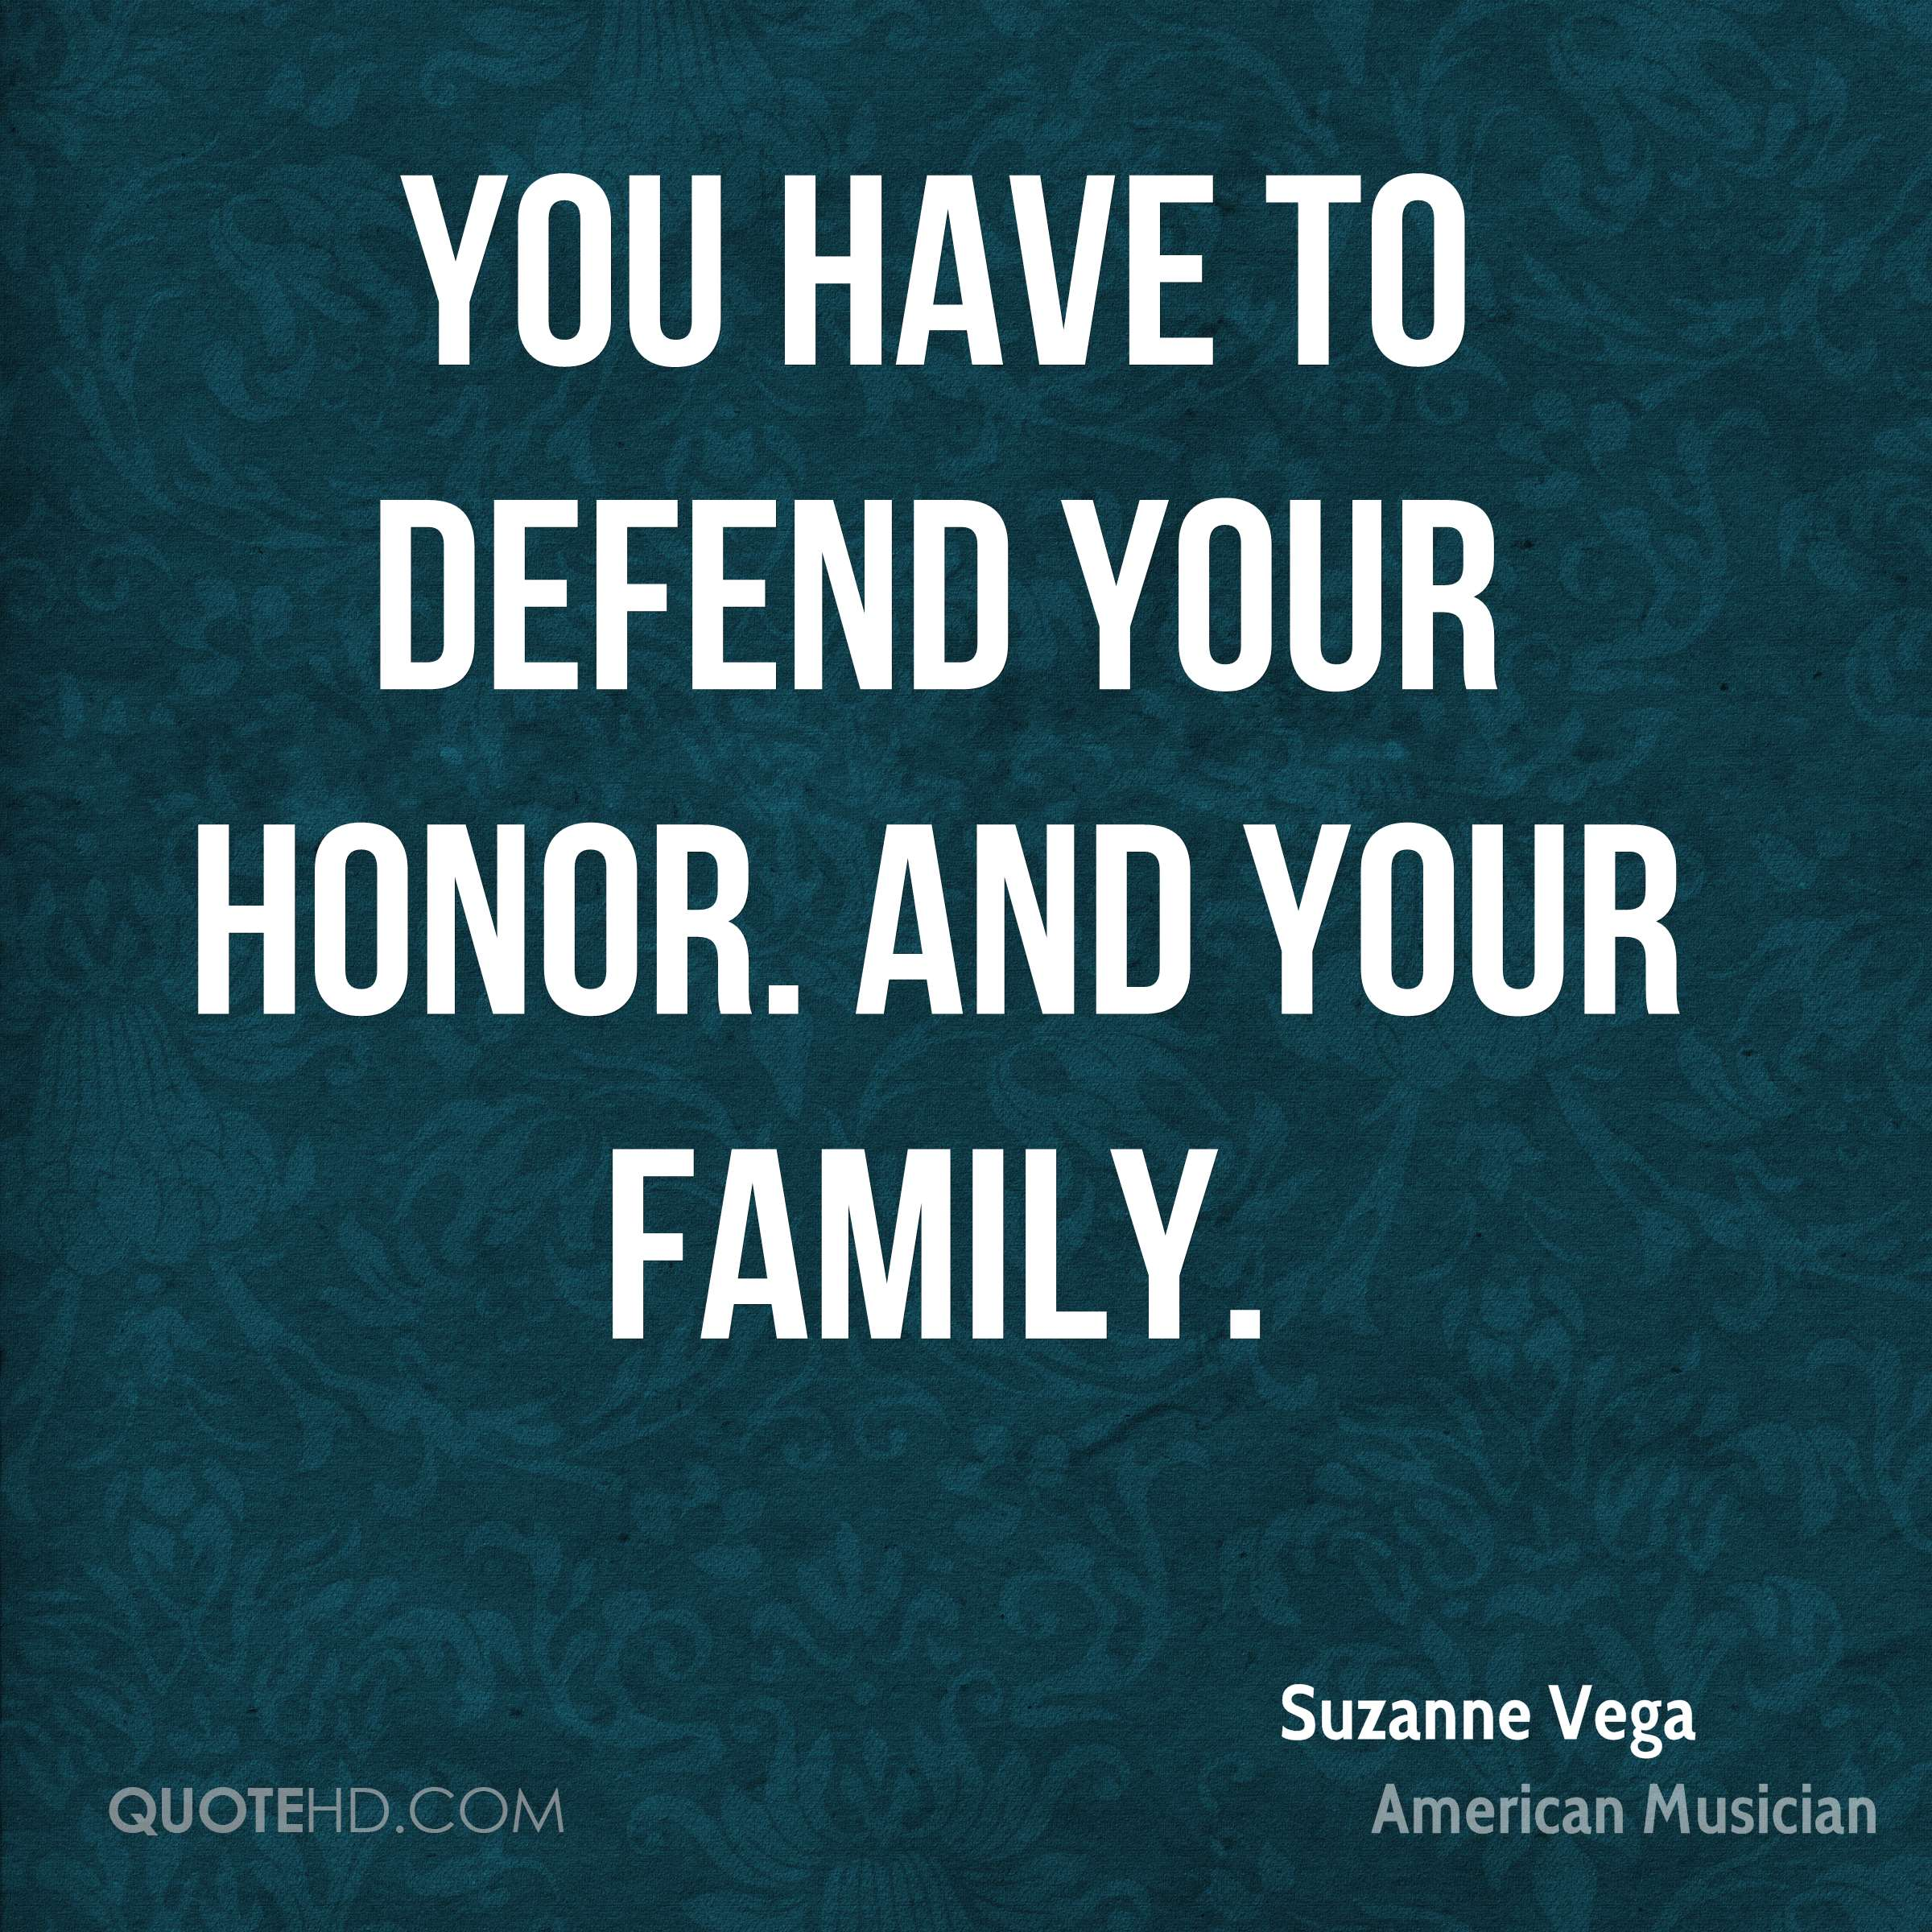 You have to defend your honor. And your family.